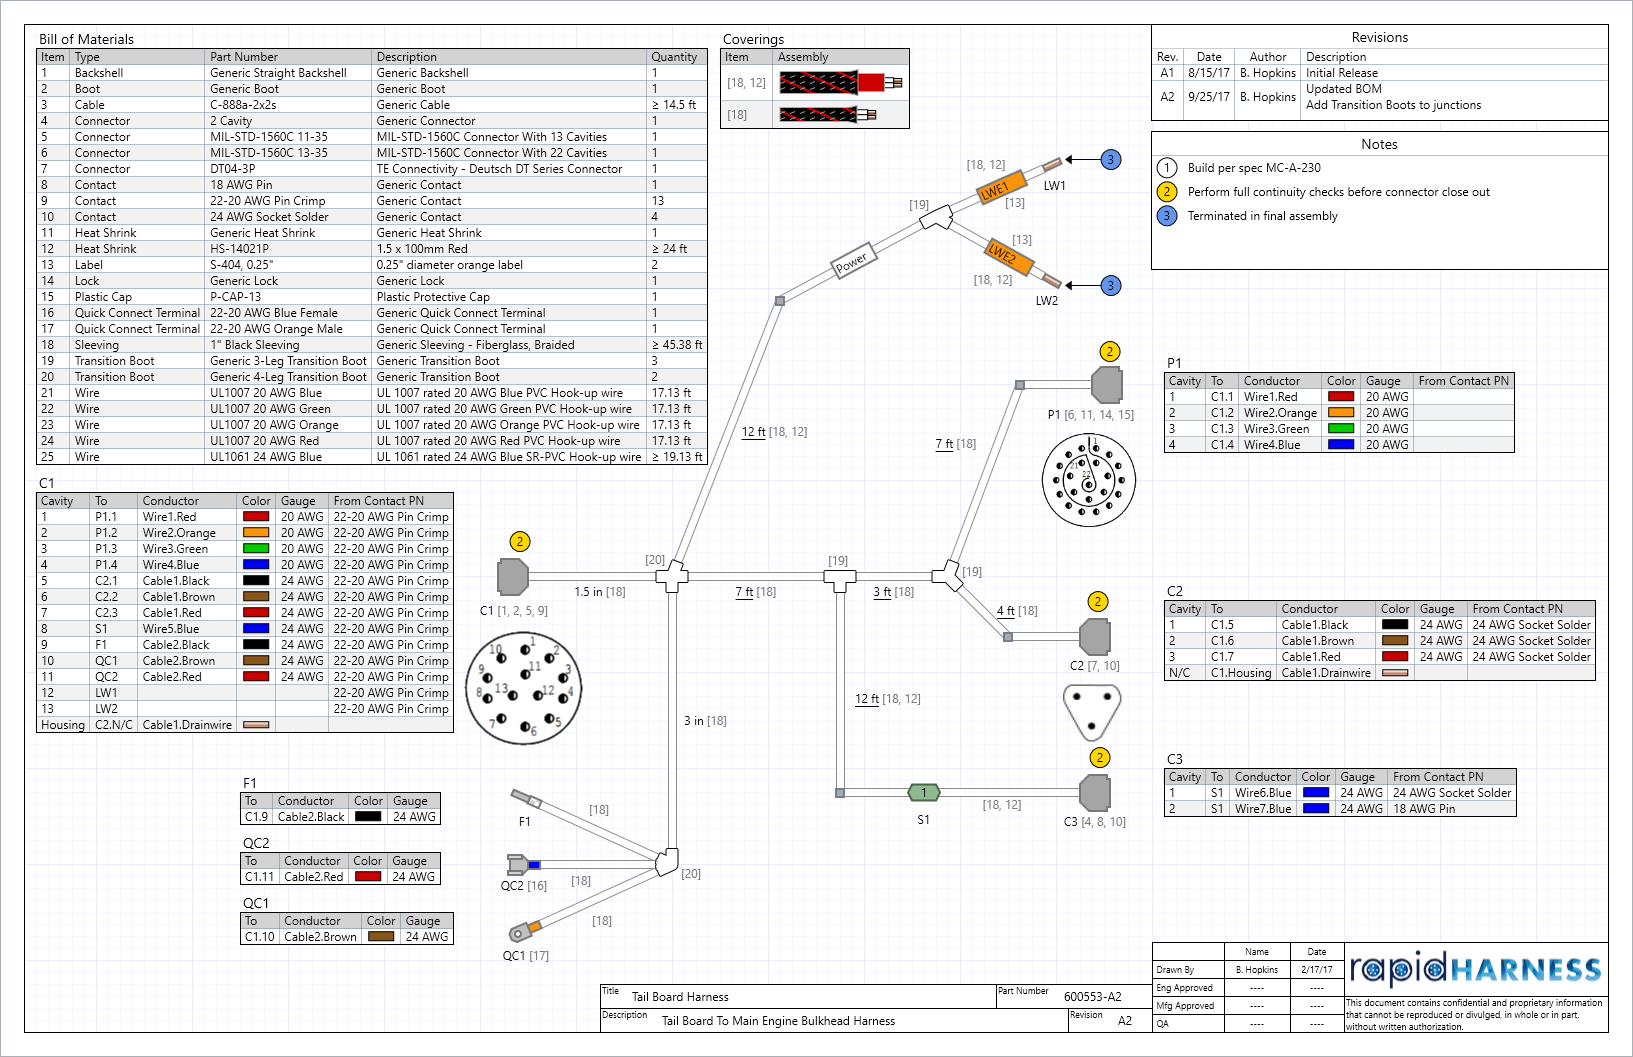 wiring harness drawing software